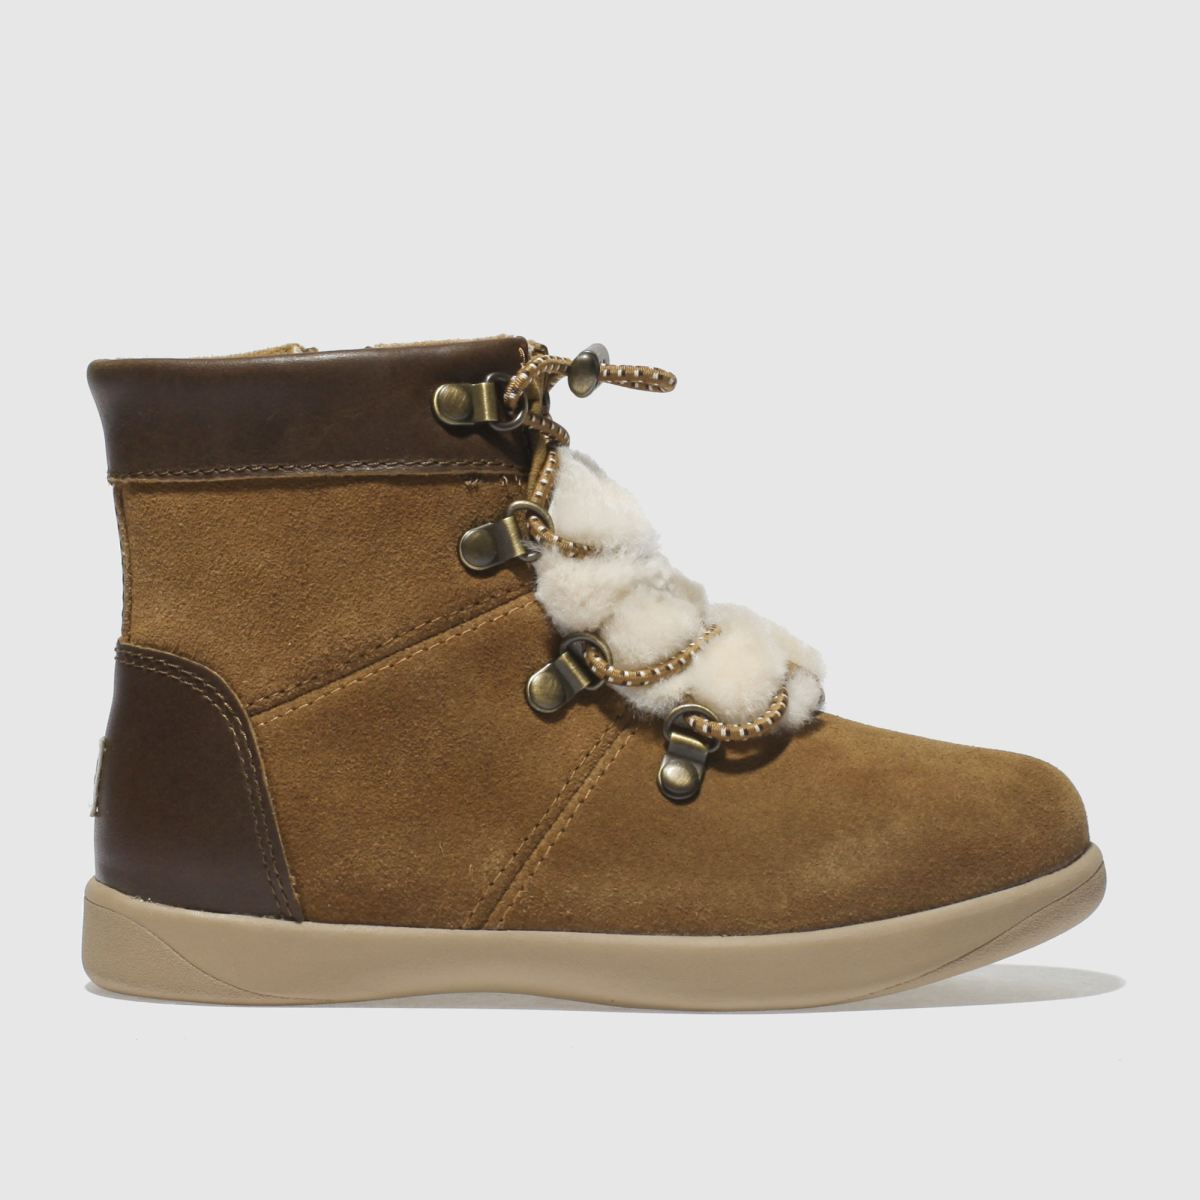 Ugg Tan Ager Boots Toddler